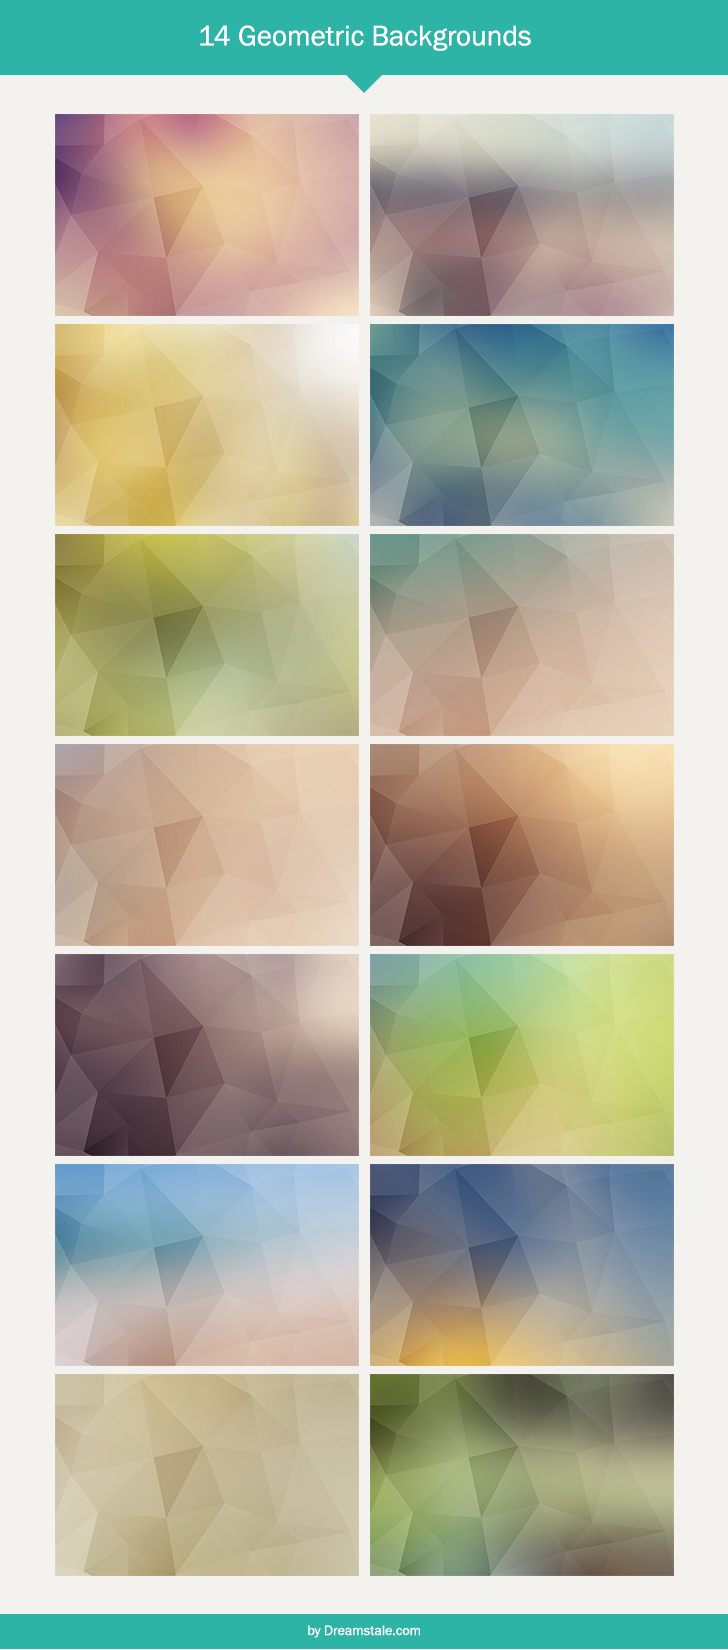 download 14 free geometric backgrounds large